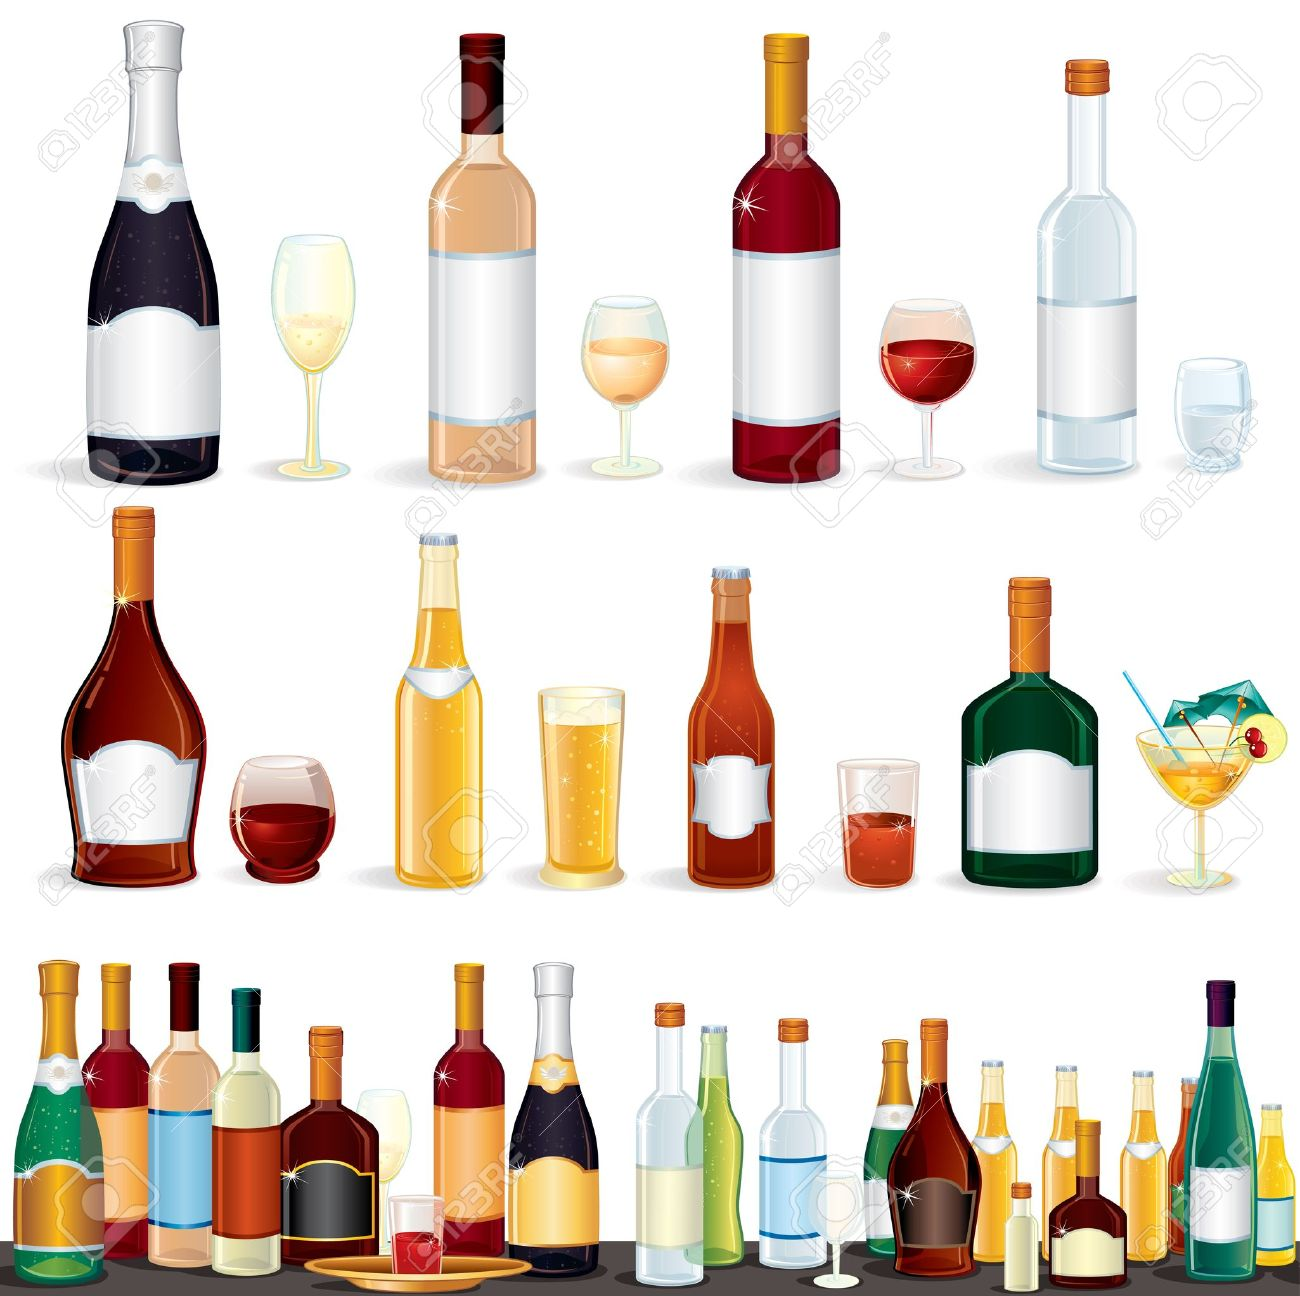 Alcohol clipart alcoholic beverage. Free cute cliparts download